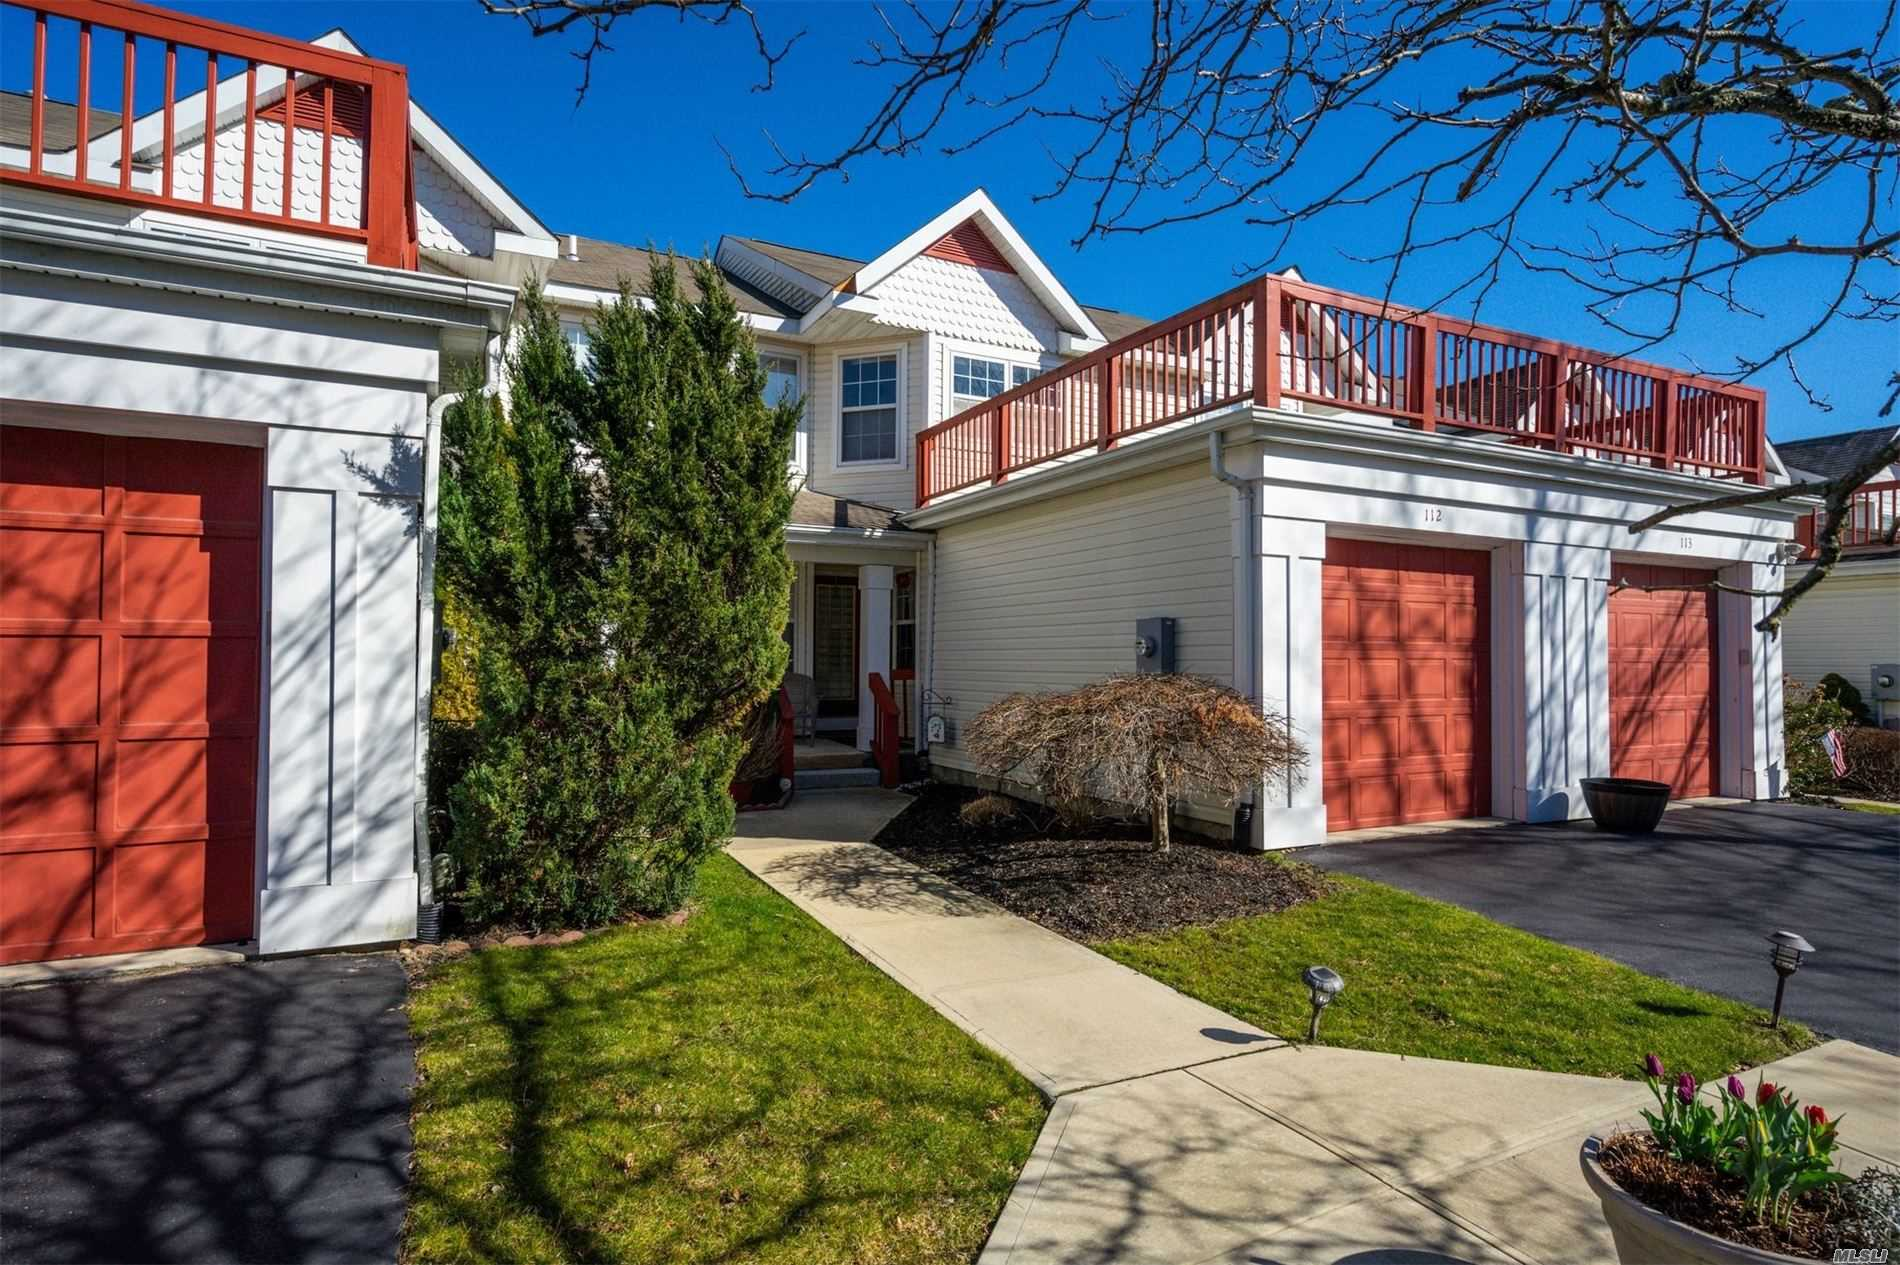 Property for sale at 112 Commodore Circle, Pt.Jefferson Sta NY 11776, Pt.Jefferson Sta,  New York 11776